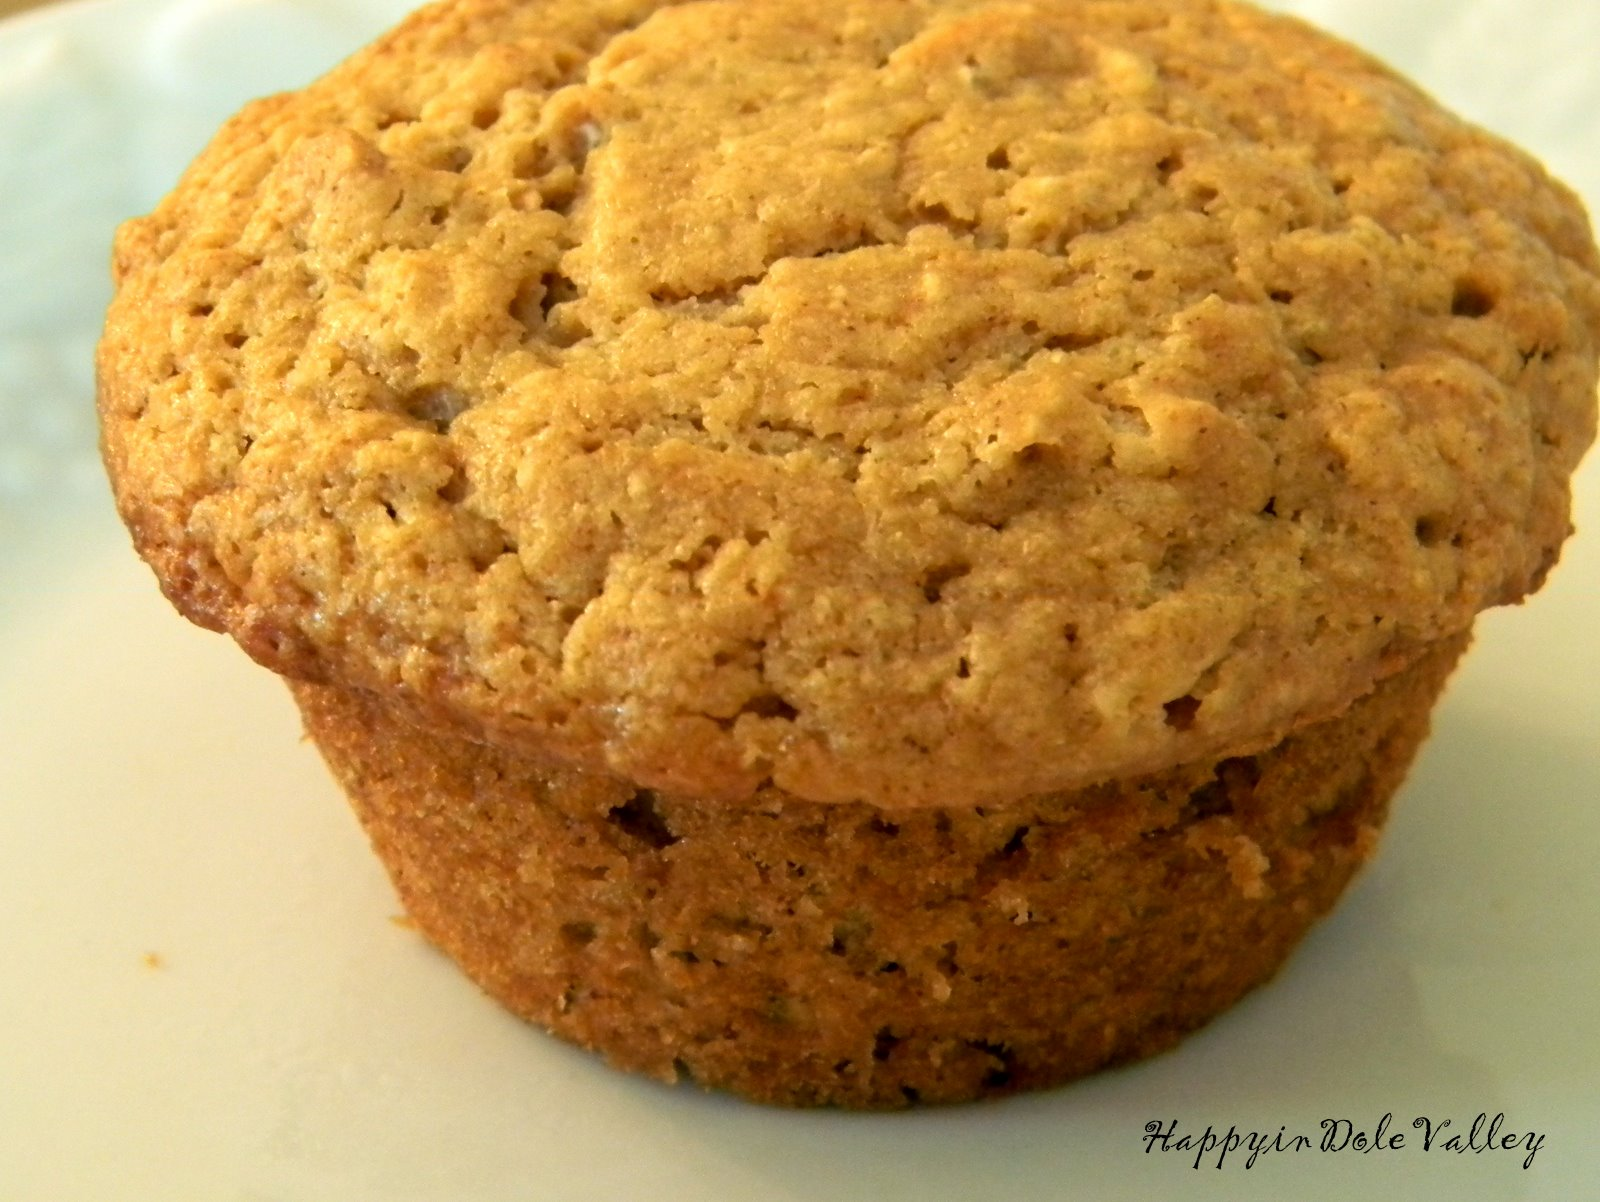 Happy in Dole Valley: Muffin Monday - Maple Oatmeal Muffins